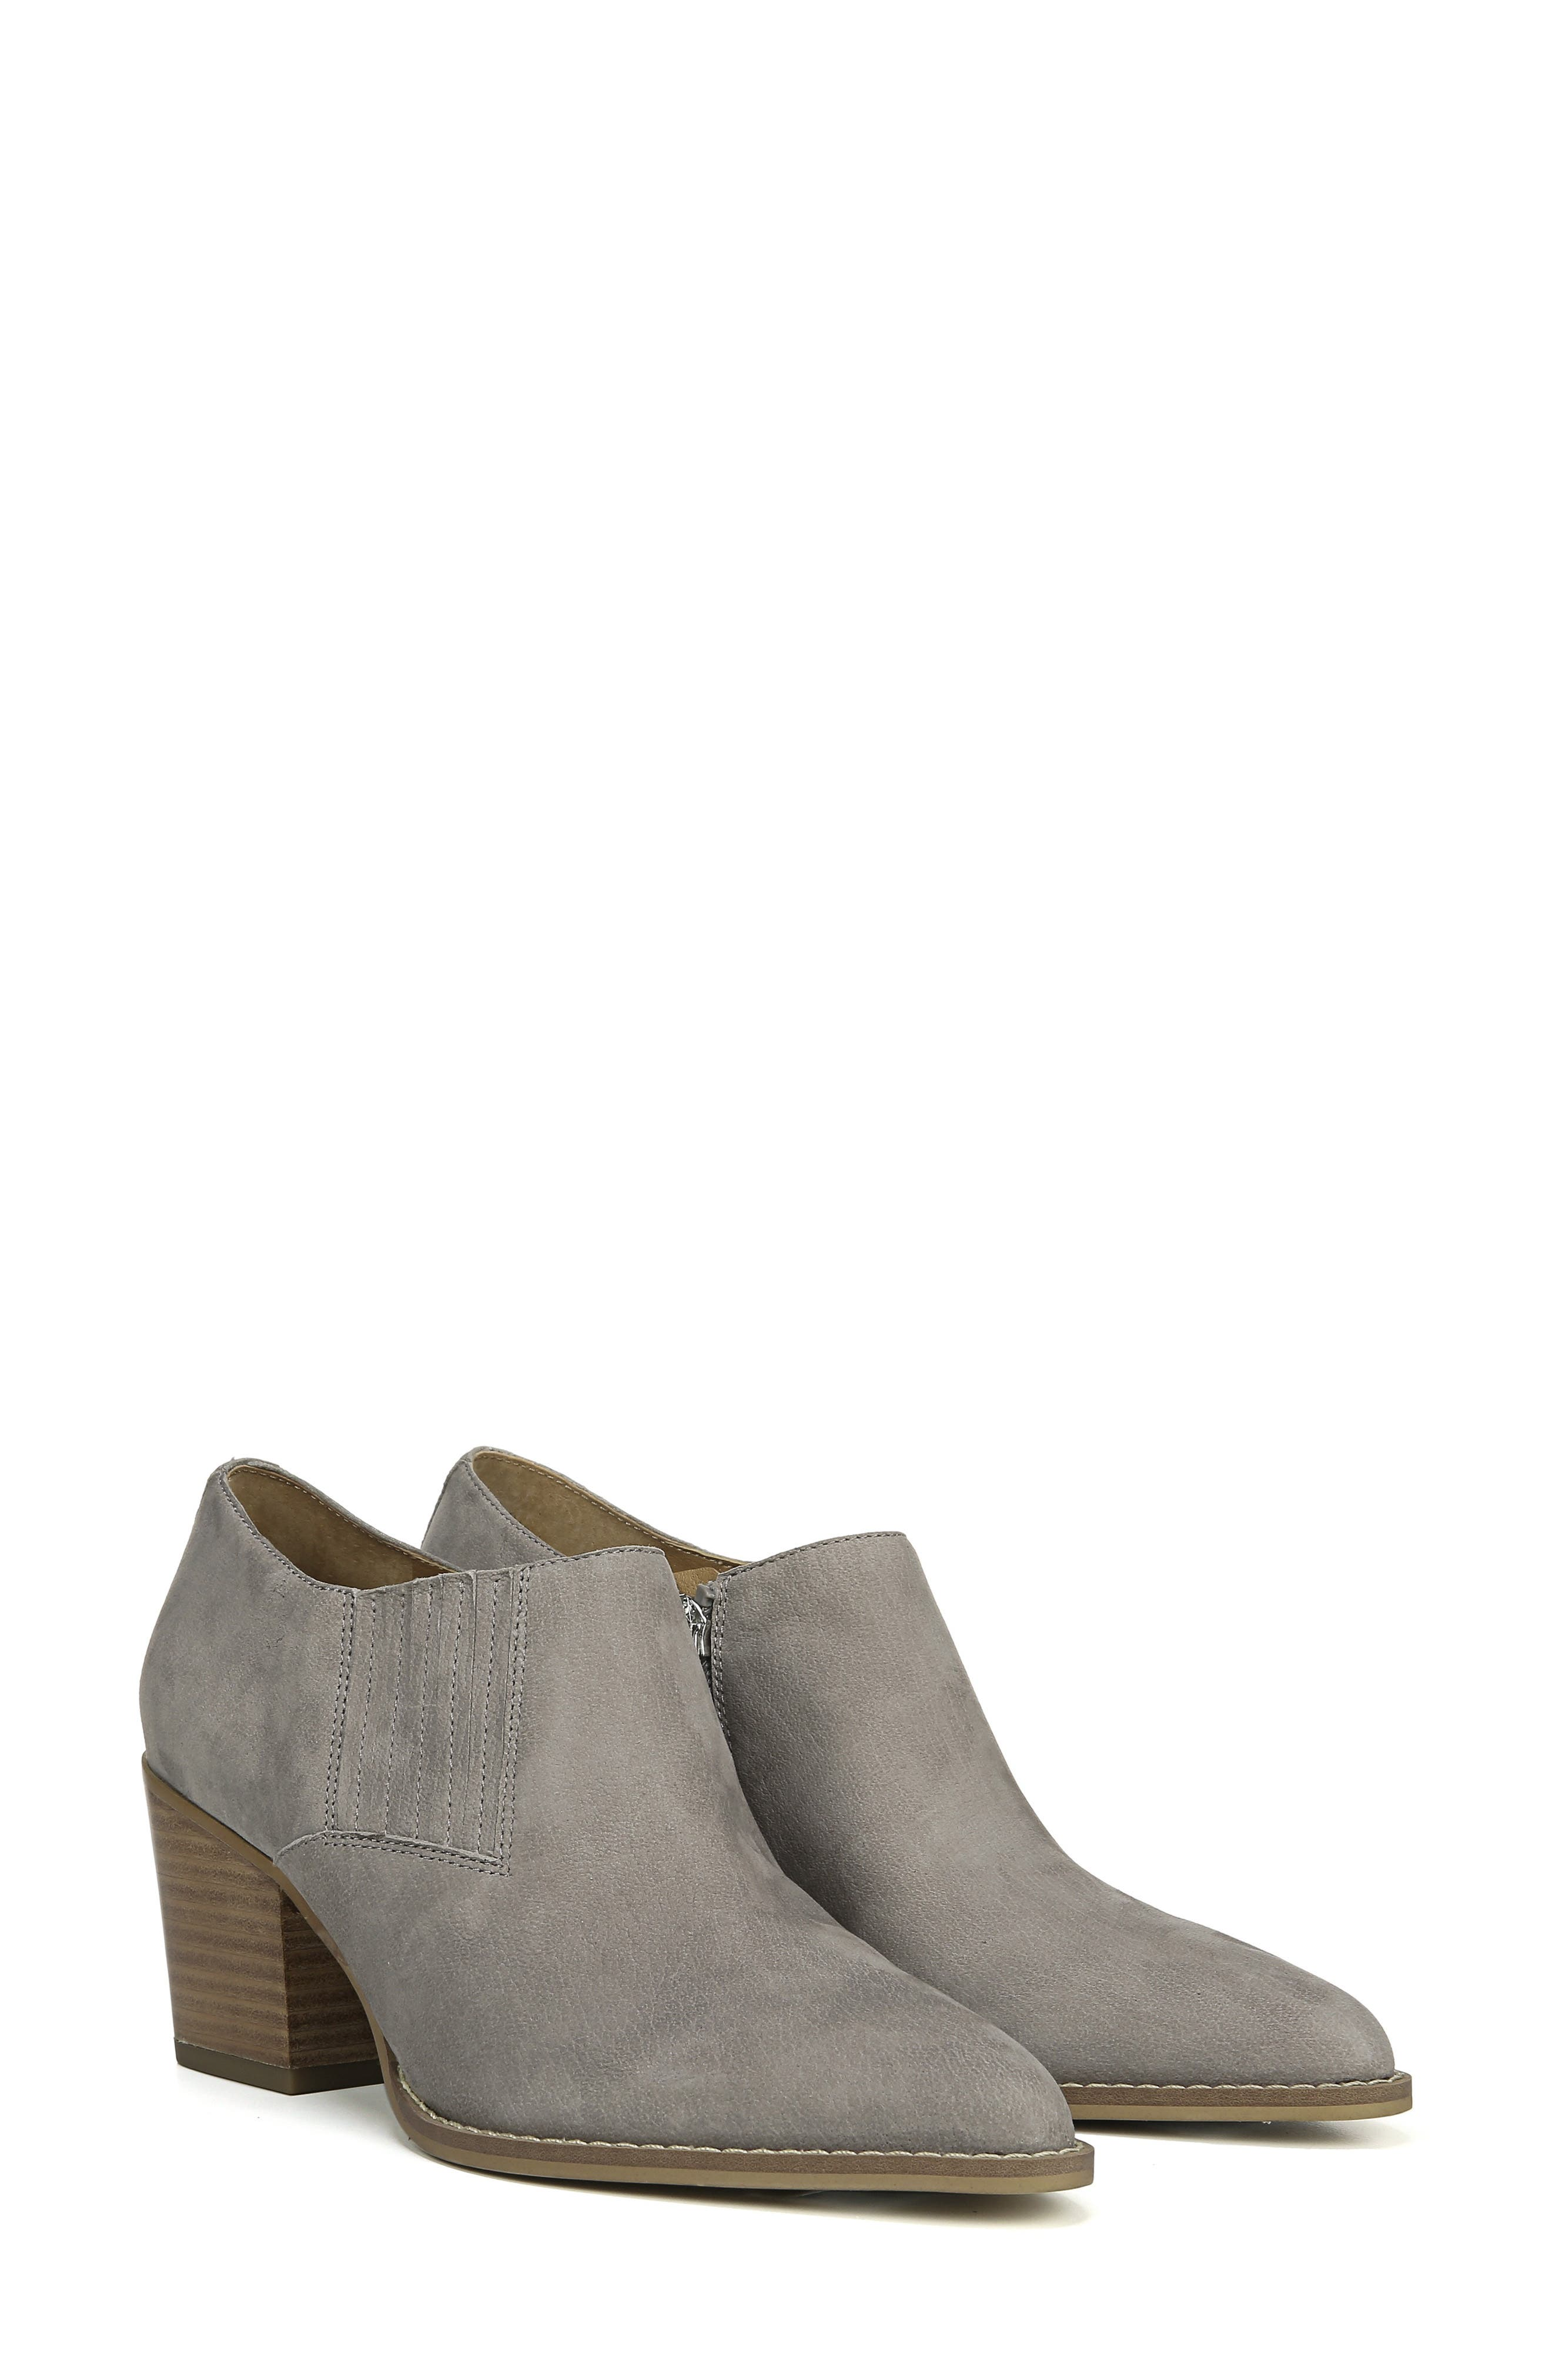 Camella Bootie,                             Alternate thumbnail 8, color,                             GREYSTONE NUBUCK LEATHER